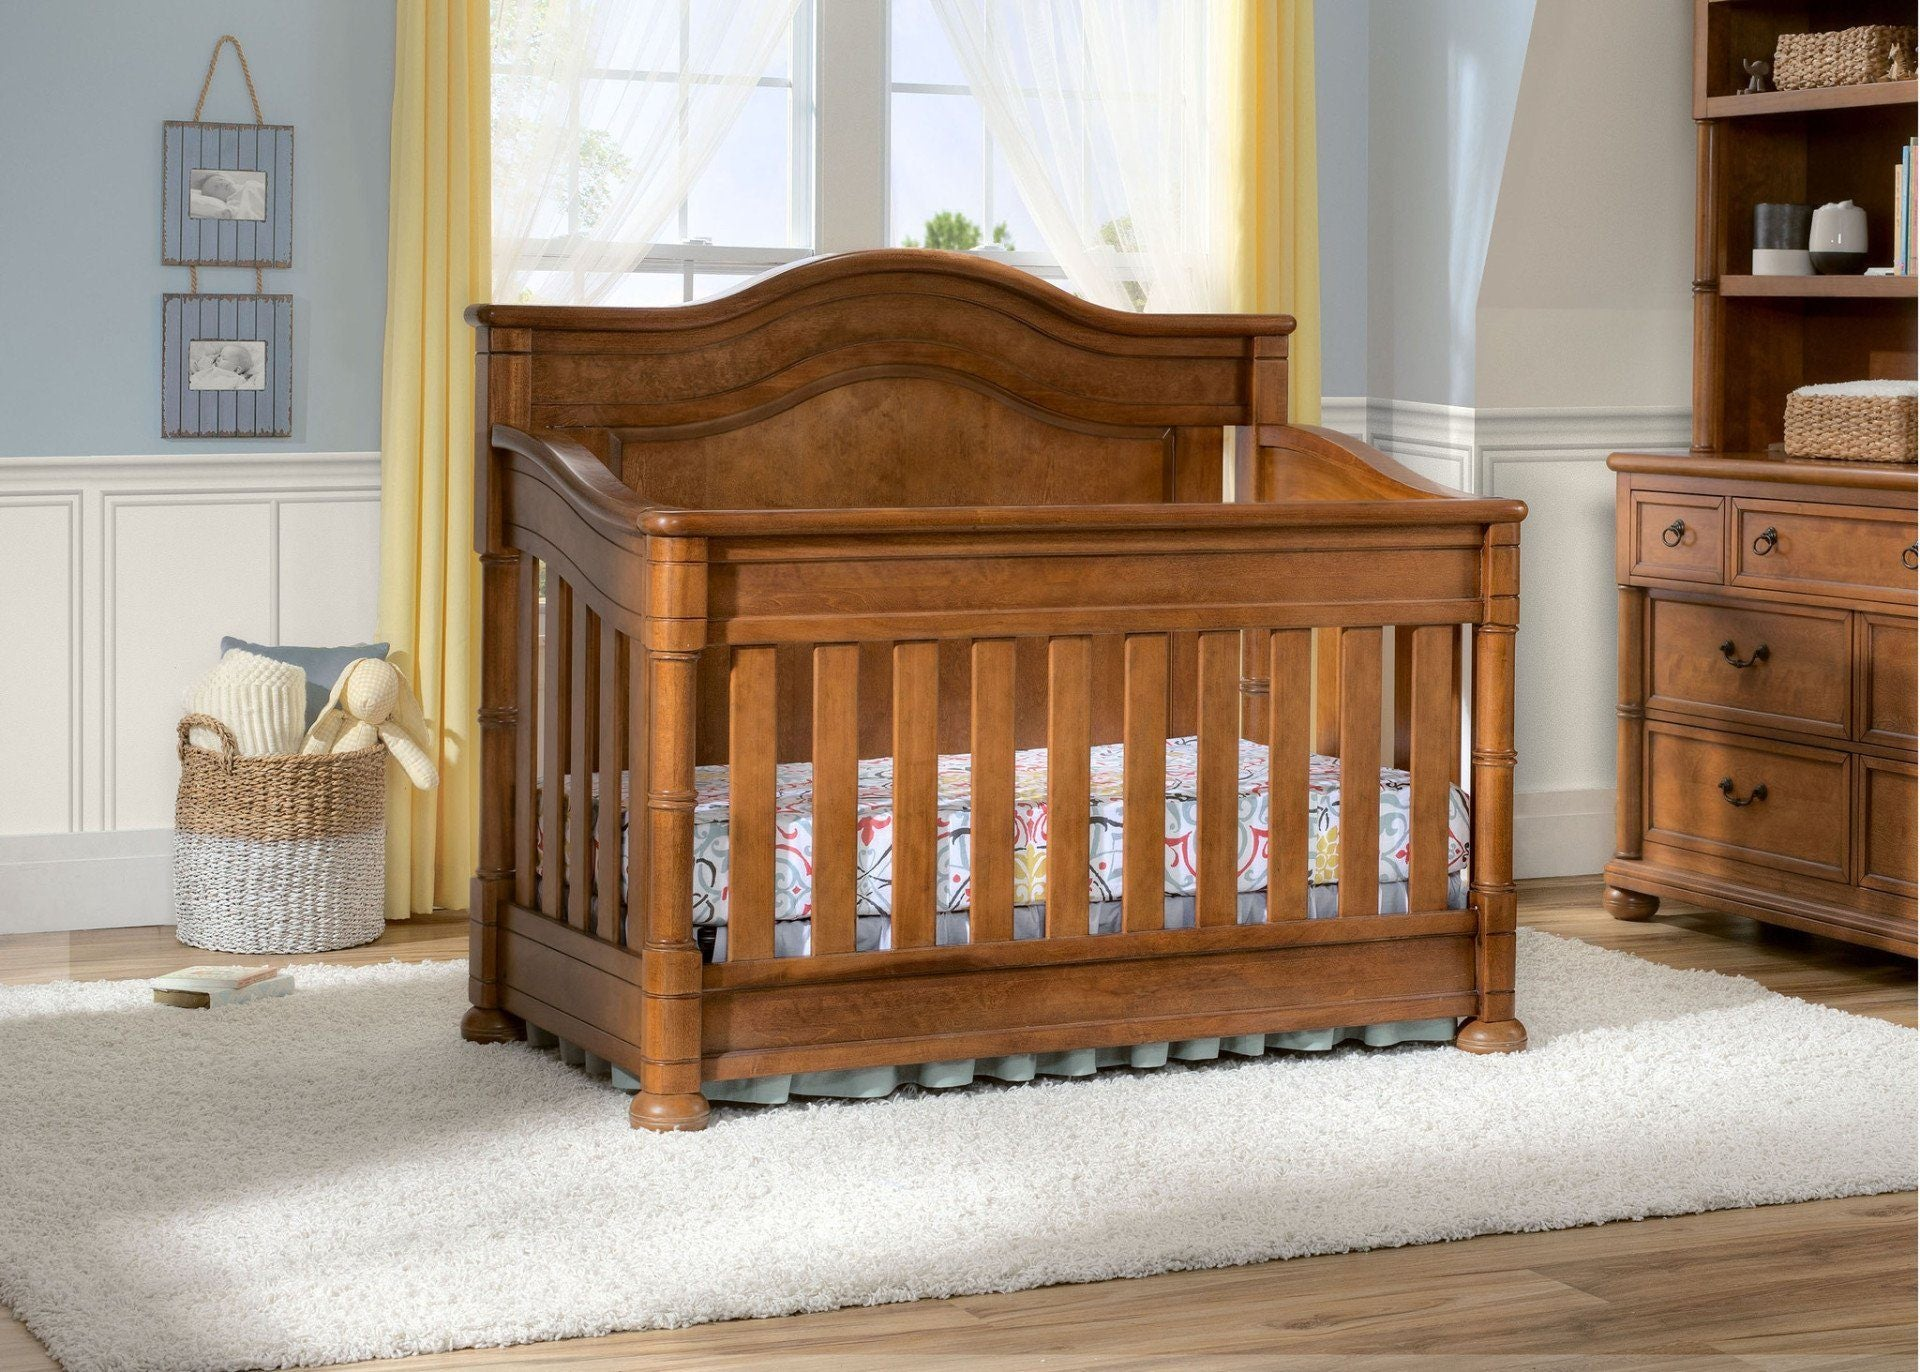 simmons nursery furniture. Simmons Kids Chestnut (227) Hanover Park Crib \u0027N\u0027 More In Setting B1b Nursery Furniture O